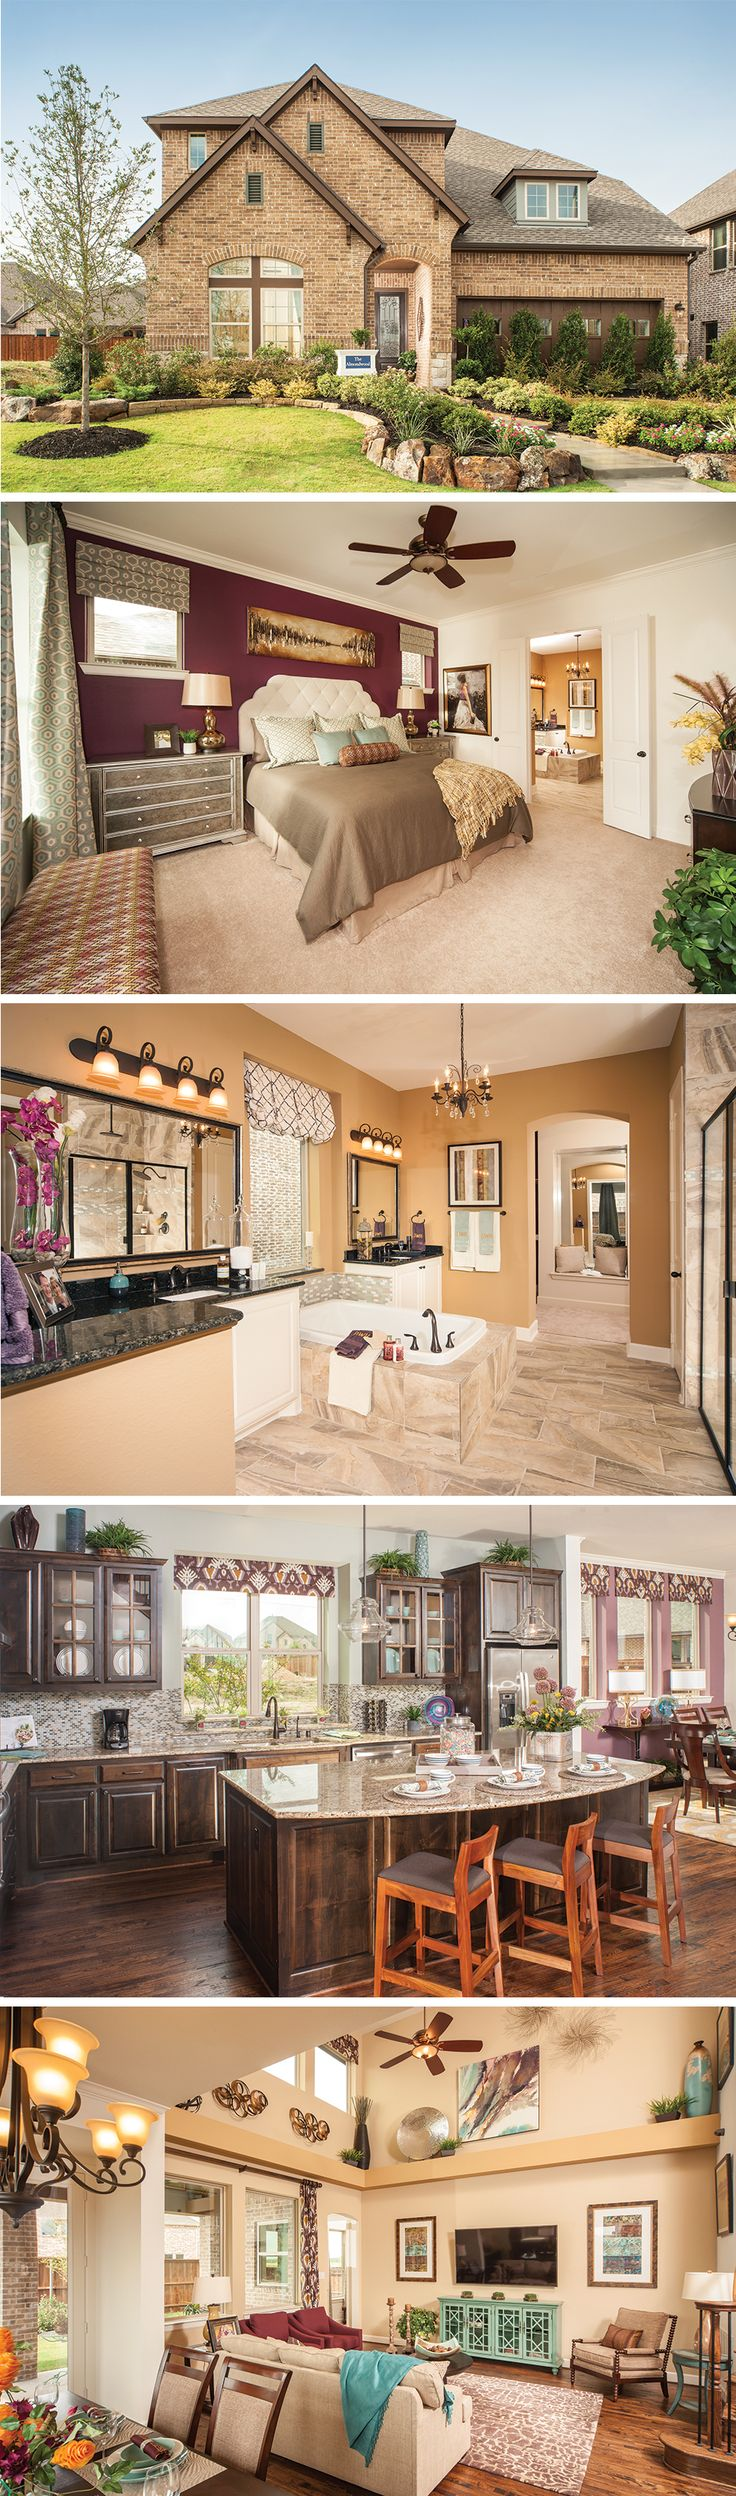 The Almondwood by David Weekley Homes in Campion Hollows is a 5 or 6 bedroom home that features a covered porch, a study and a open kitchen and family room. Custom home features include a wet bar, an expanded outdoor living area and a beautiful curved staircase.